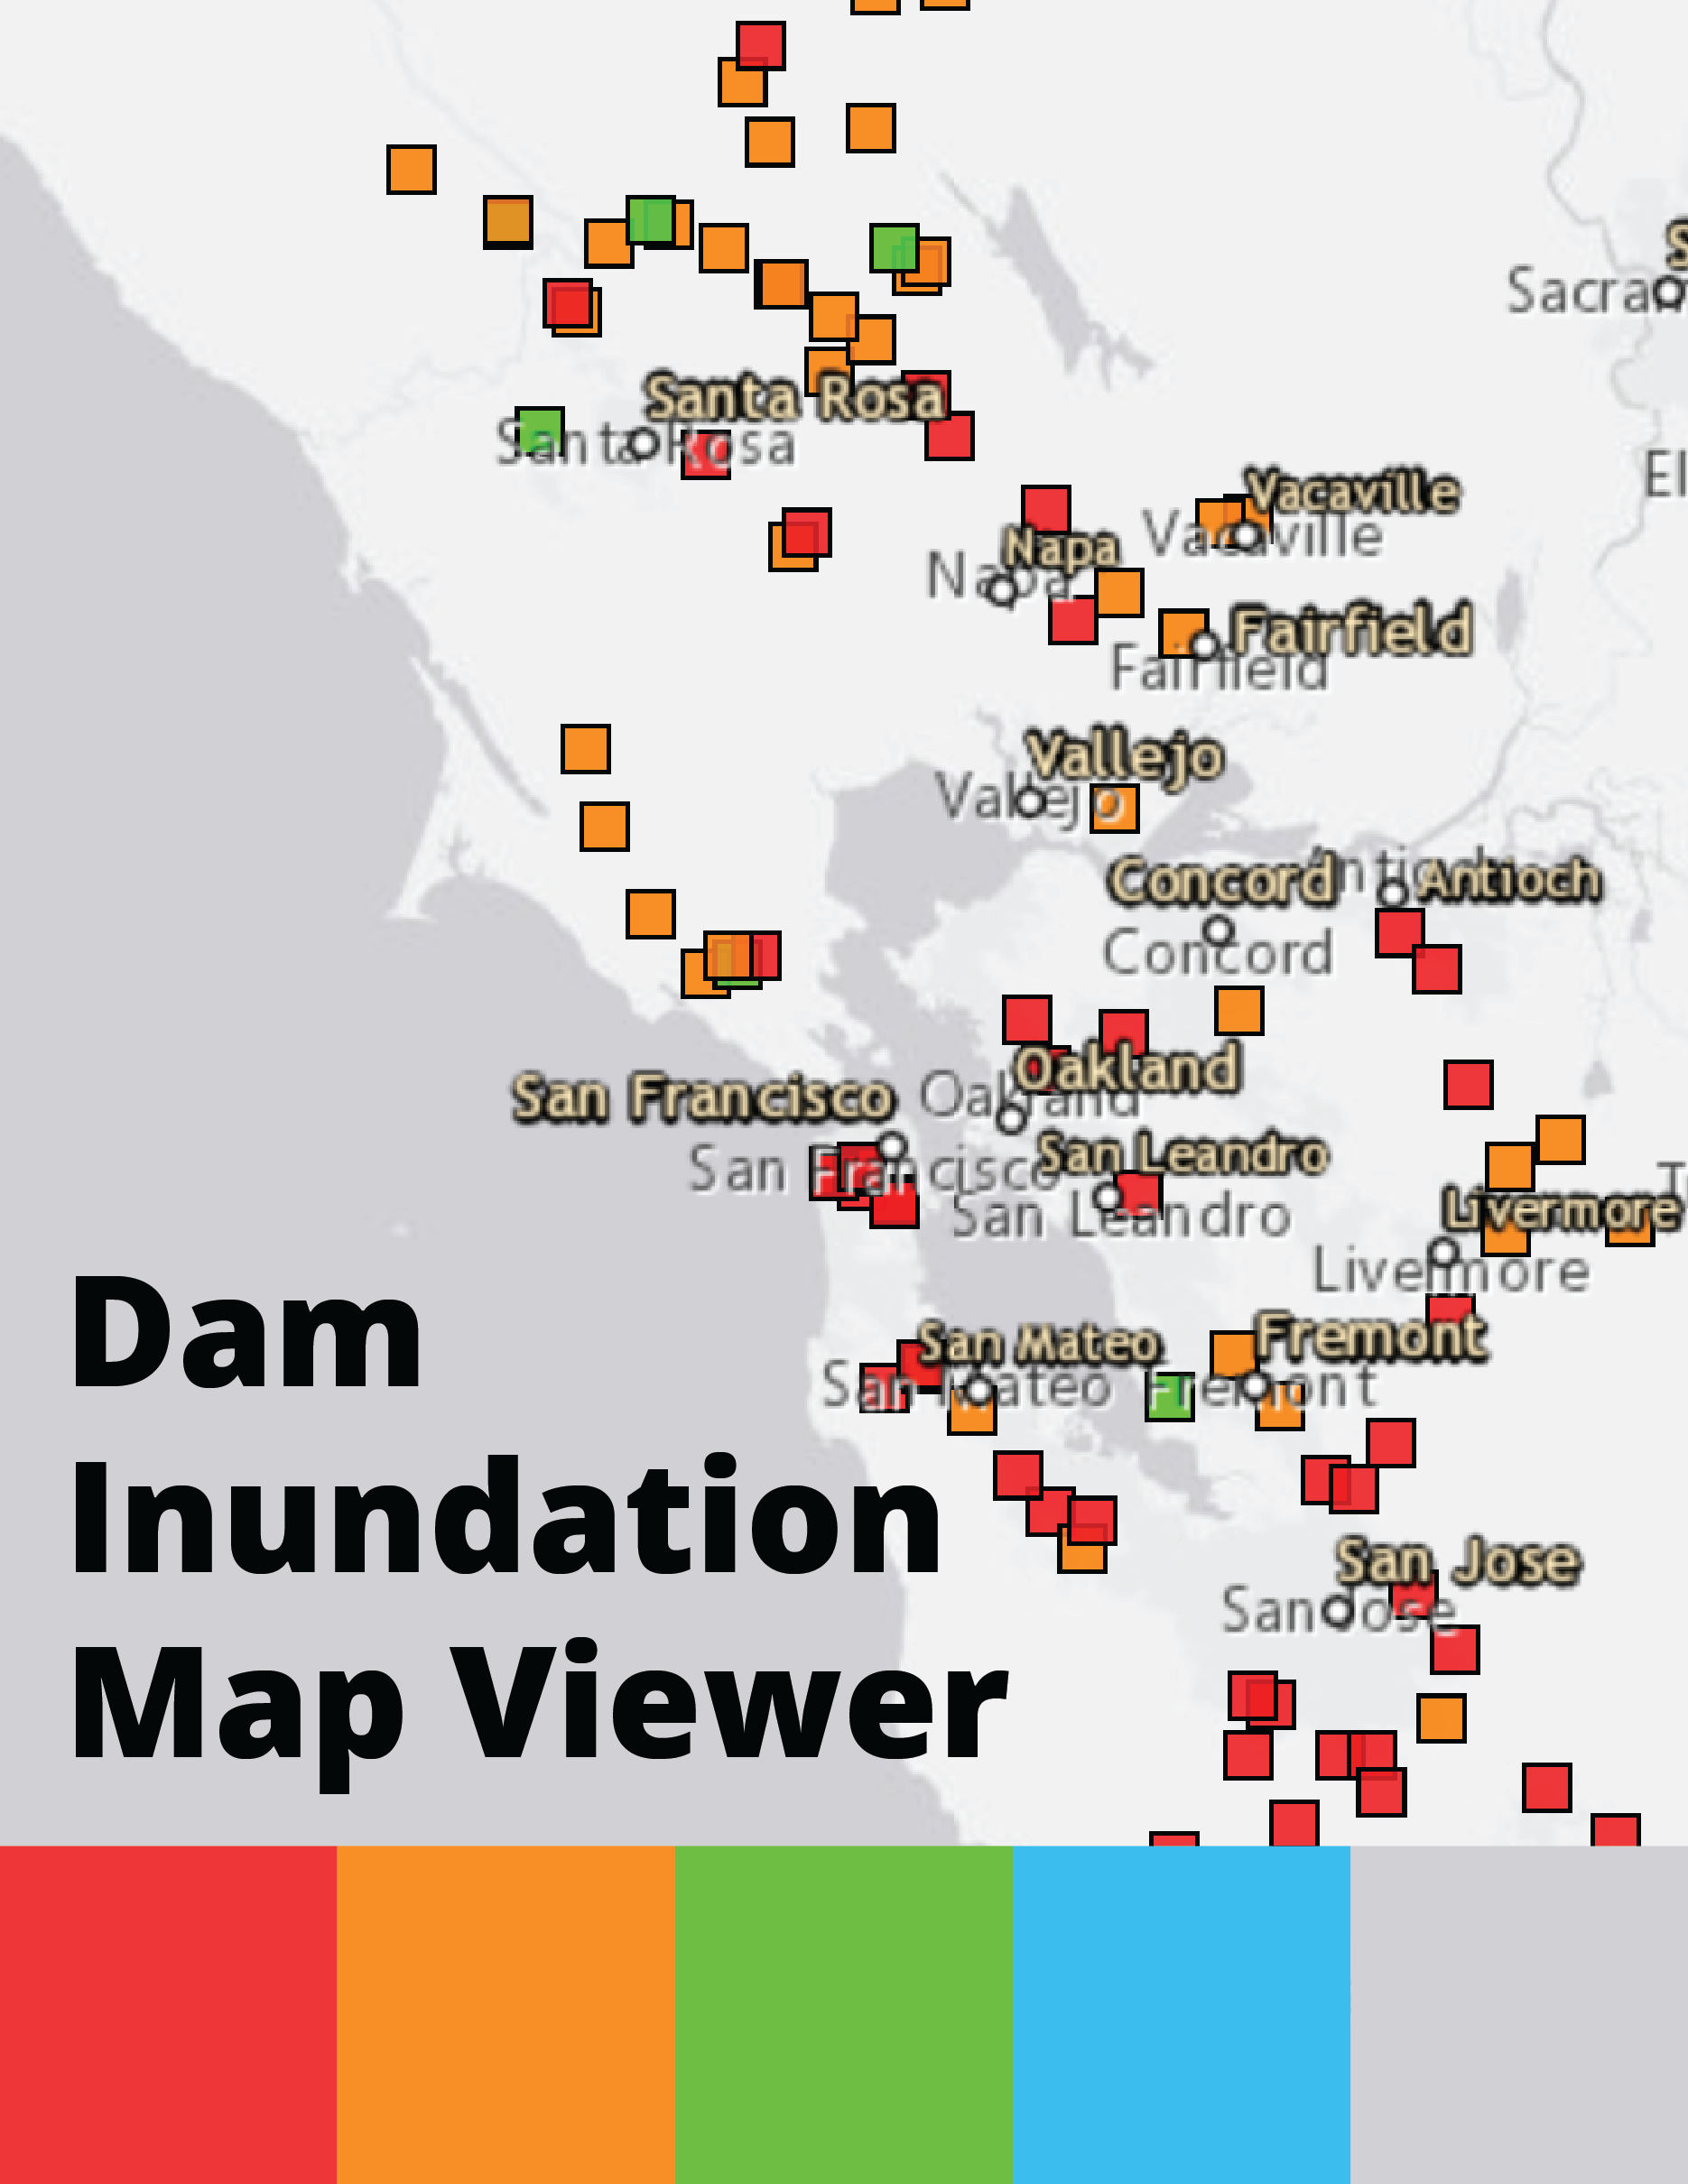 Dam Inundation Map Viewer